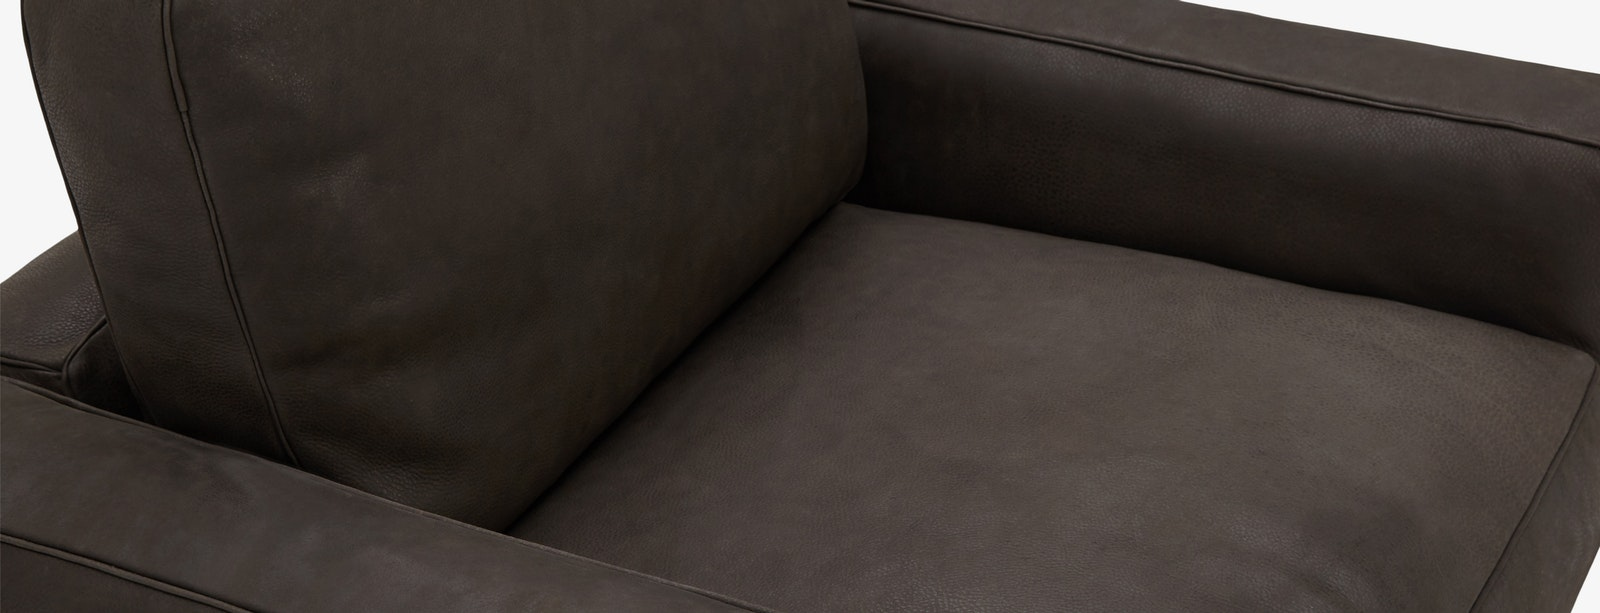 Nova-Leather-Swivel-Chair-Toledo-Graphite-T1-441